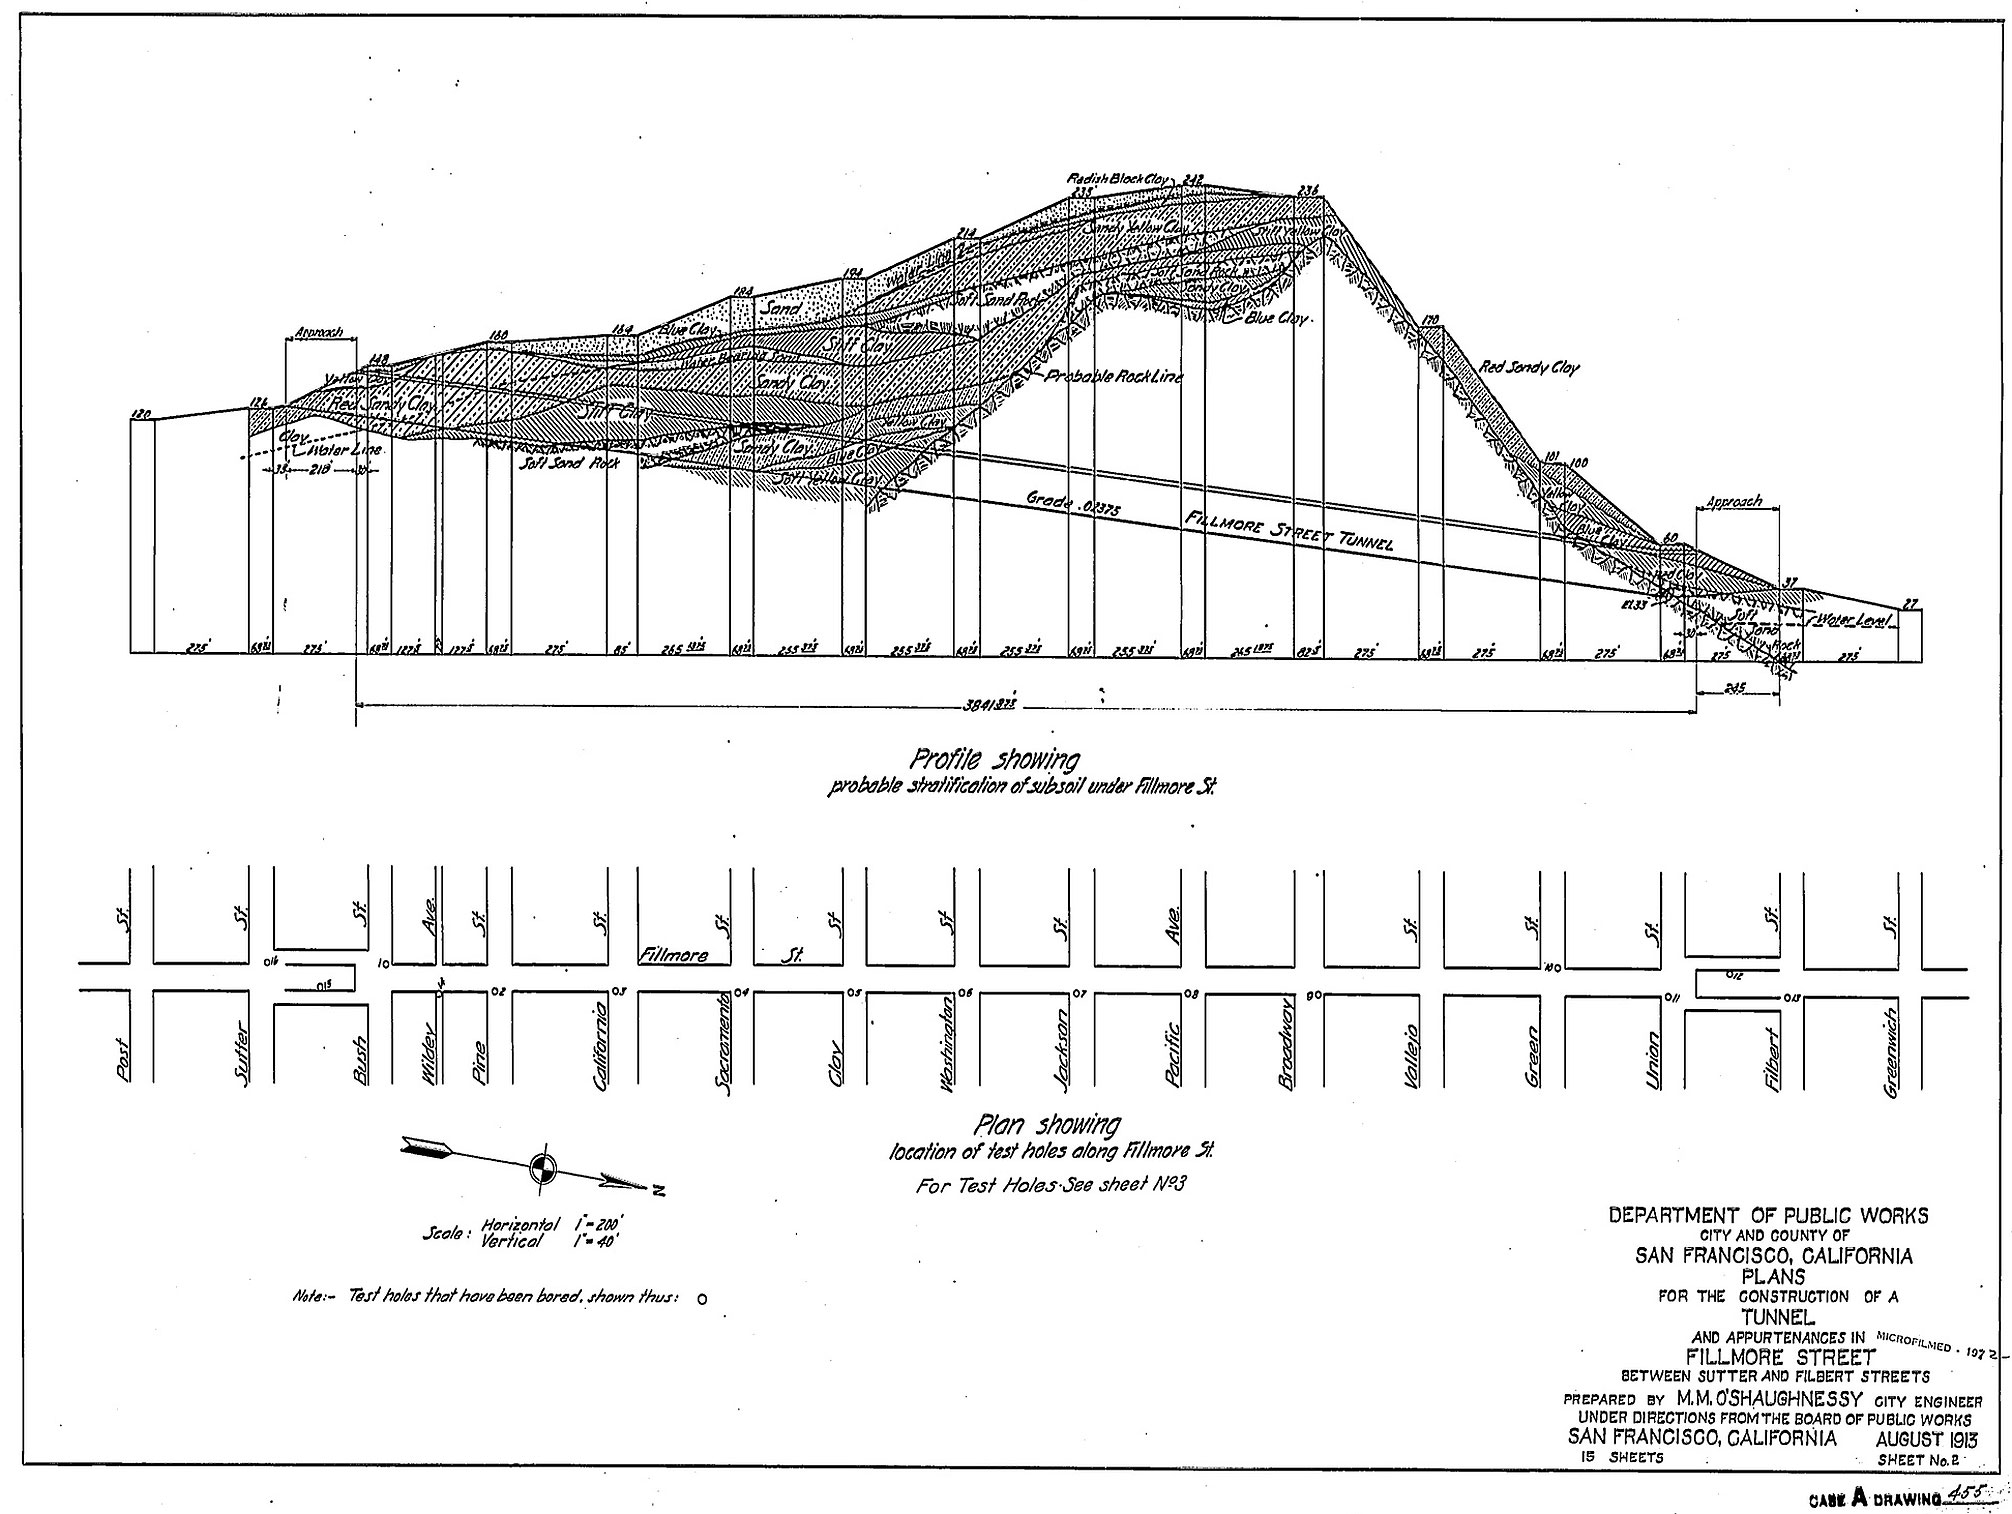 Aug-1915-Fillmore-Street-Tunnel-plan-showing-geology-and-elevation.jpg